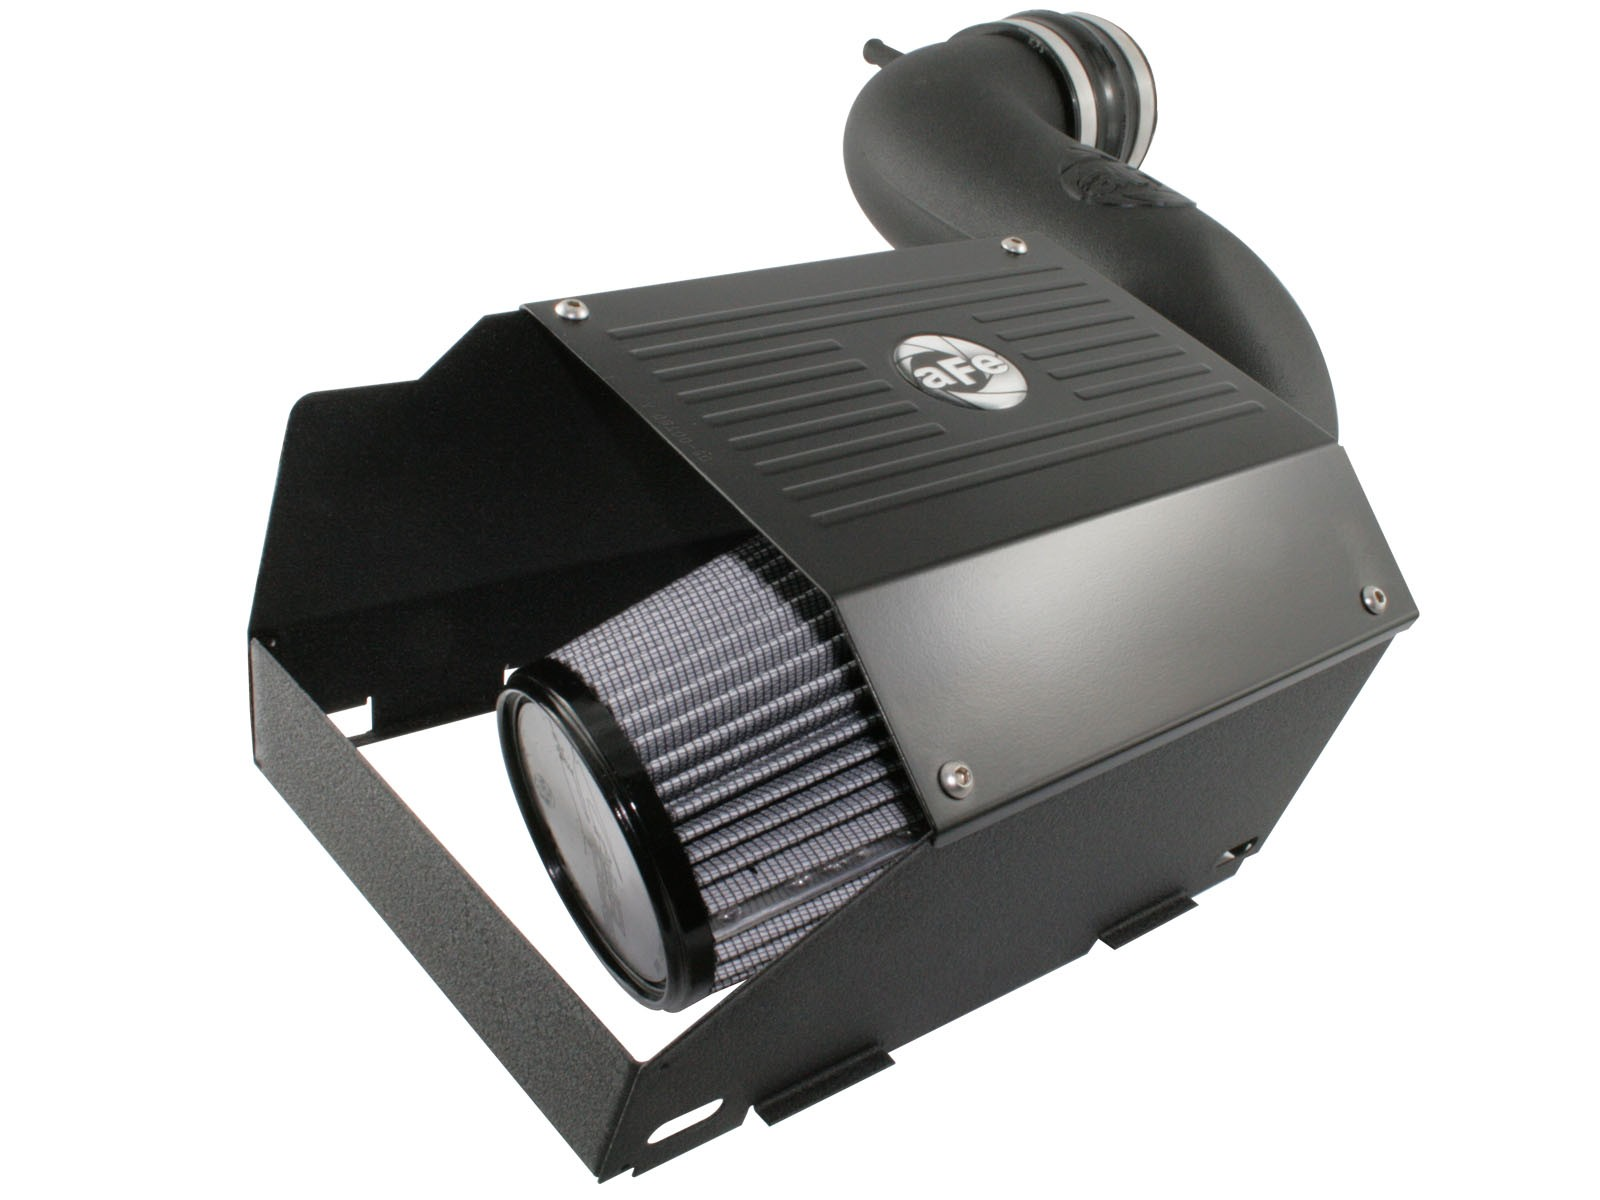 aFe POWER 51-10252 Magnum FORCE Stage-2 Pro DRY S Cold Air Intake System